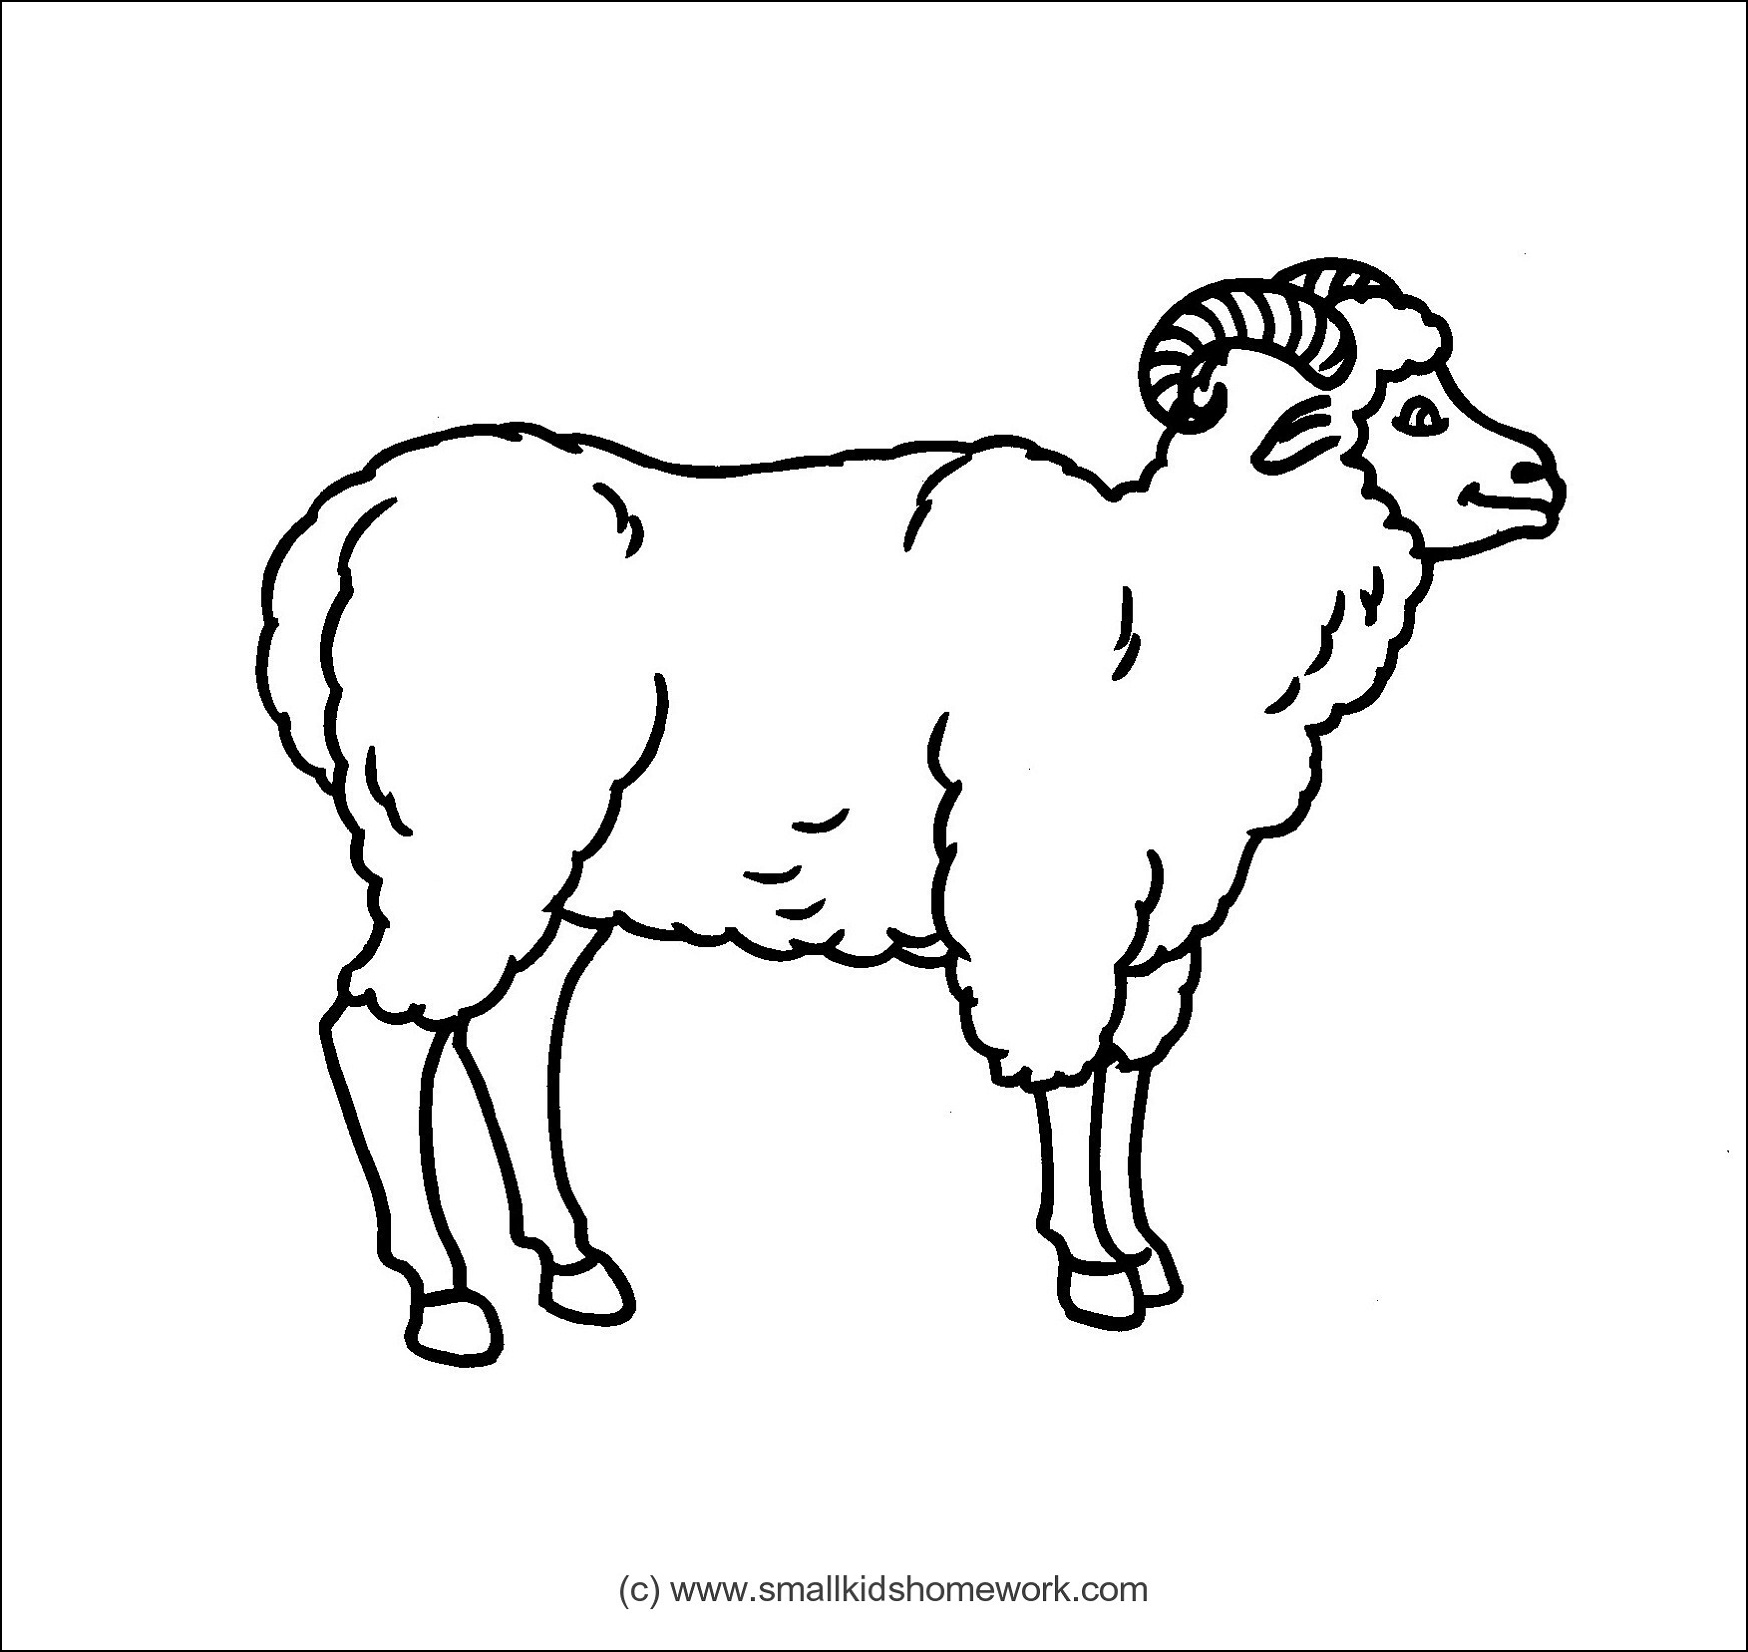 Sheep Outline and Coloring Picture with Interesting Facts